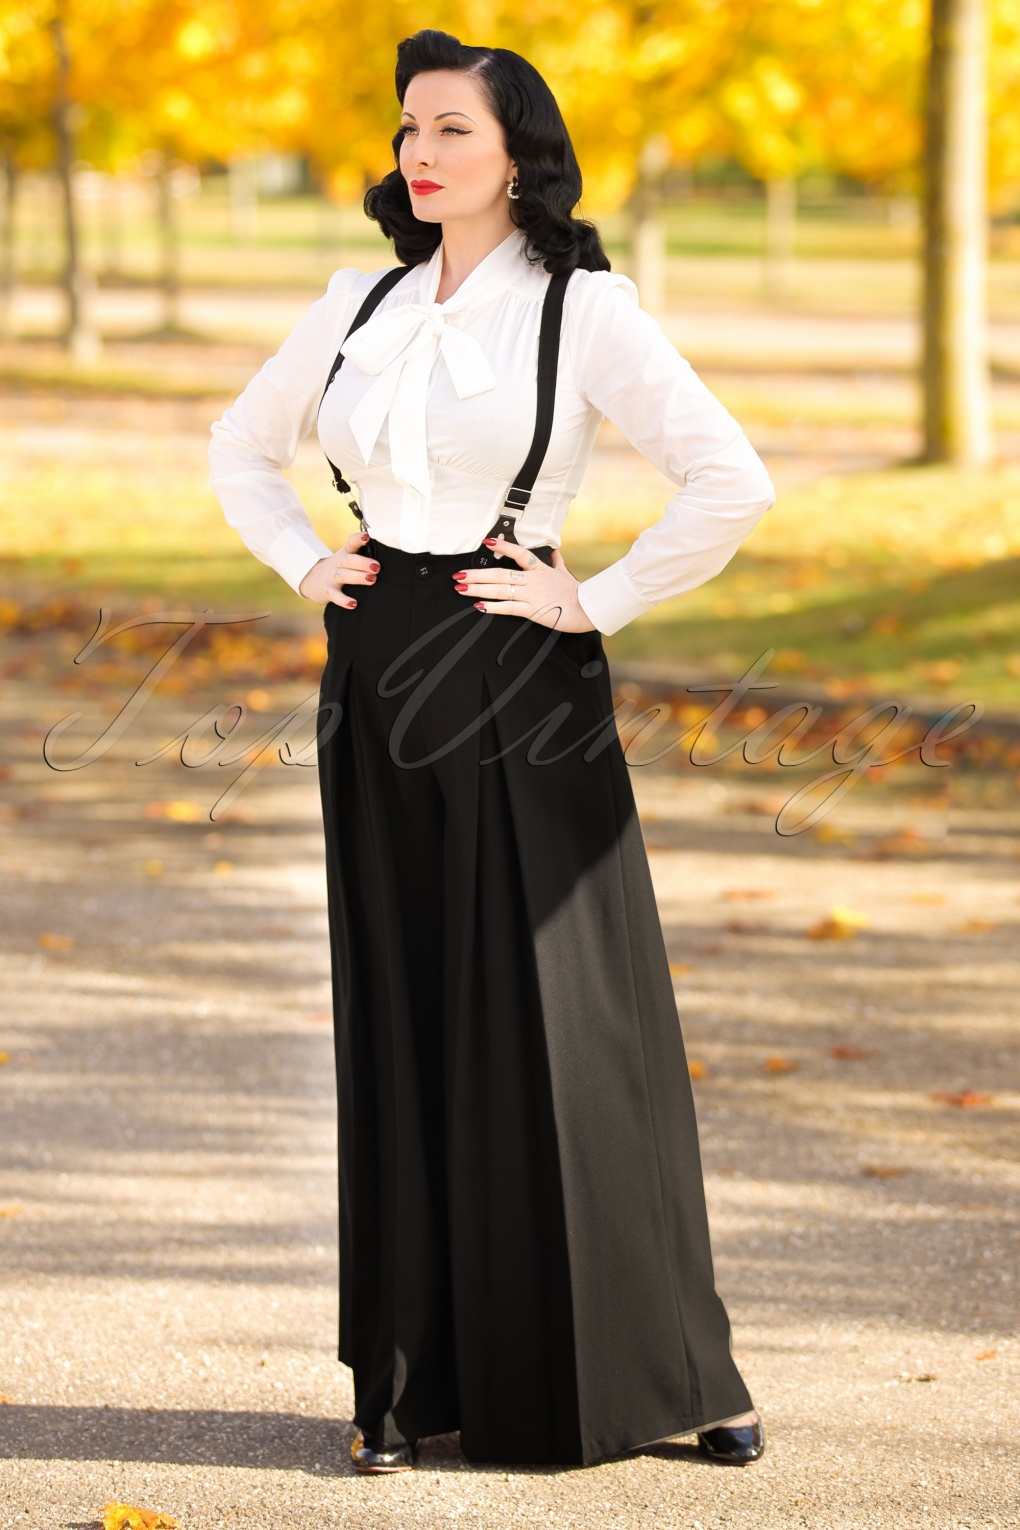 Vintage High Waisted Trousers, Sailor Pants, Jeans 40s Shelley Suspenders Palazzo Trousers in Black £44.04 AT vintagedancer.com